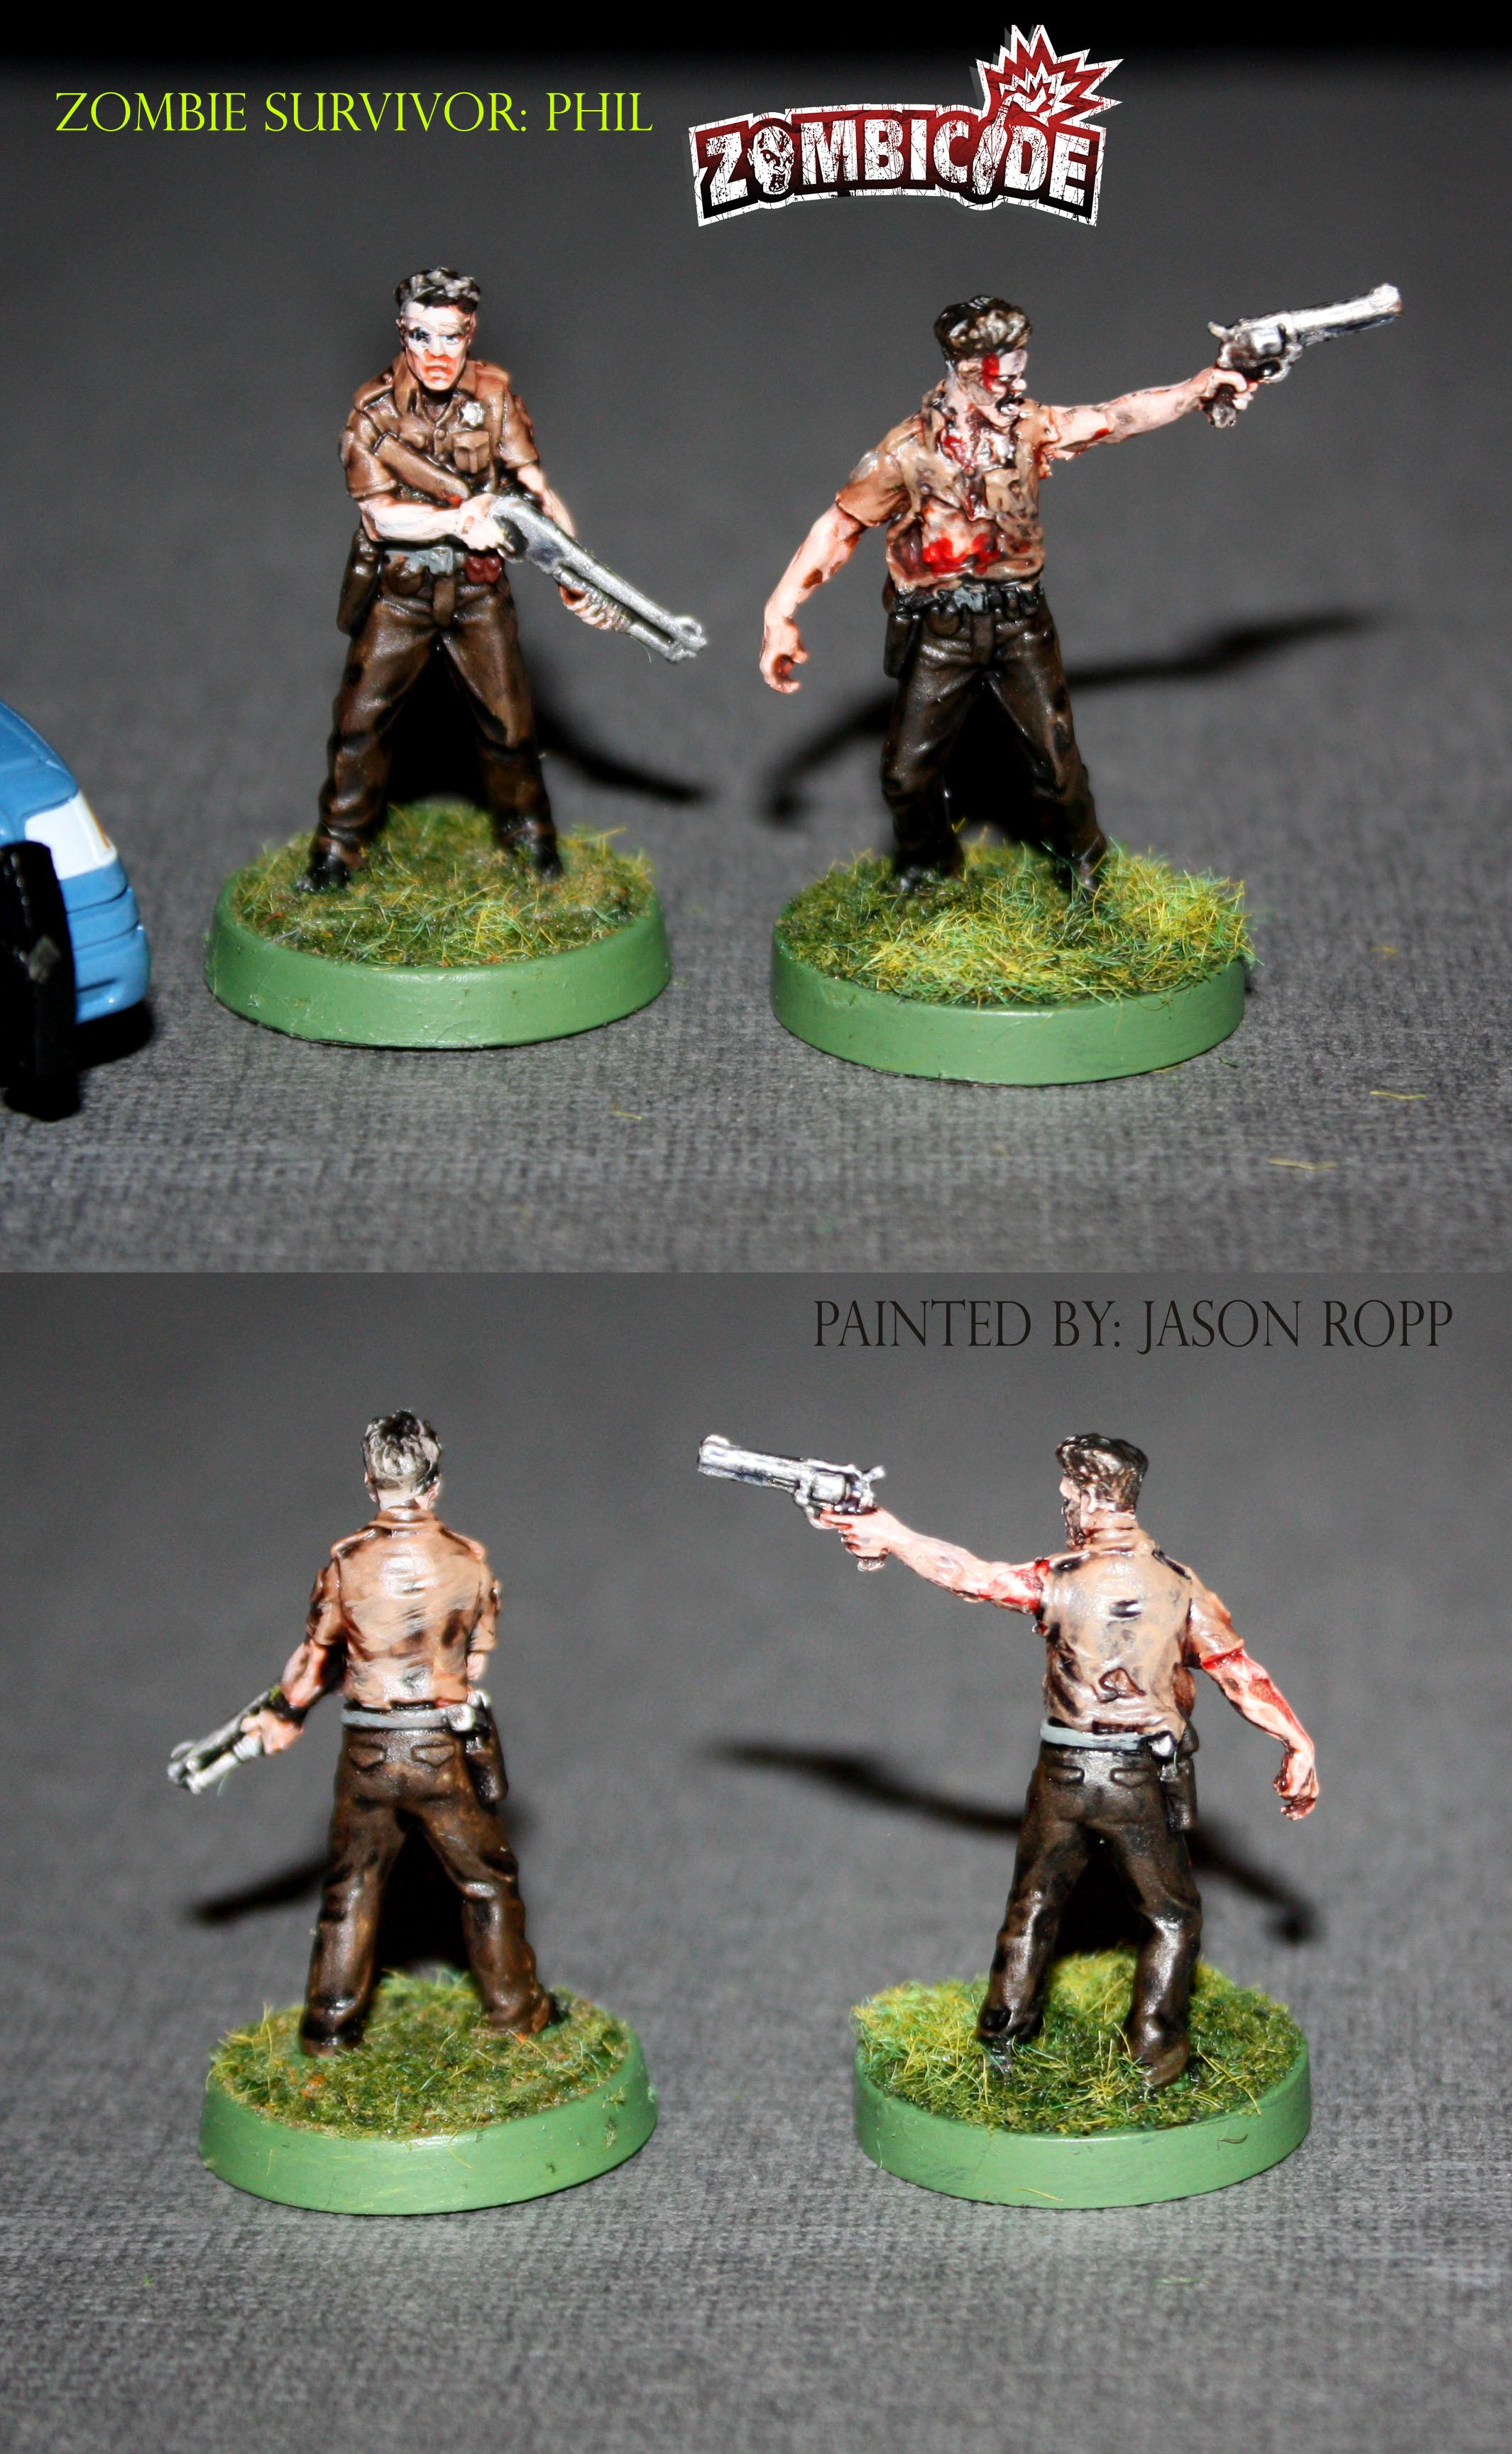 28mm, 32mm, Abominaton, All Out War, Andrea, Attack, Battle, Cool Mini Or Not, Game, Gamenight, Michone, Miniature, Miniatures, Neegan, Phil, Ral Partha, Rick, Skirmish, Survivors, Undead, Walkers, Walking Dead, Wargame, Wargamer, Wargames Factory, Zombicide, Zombie, Zombivors